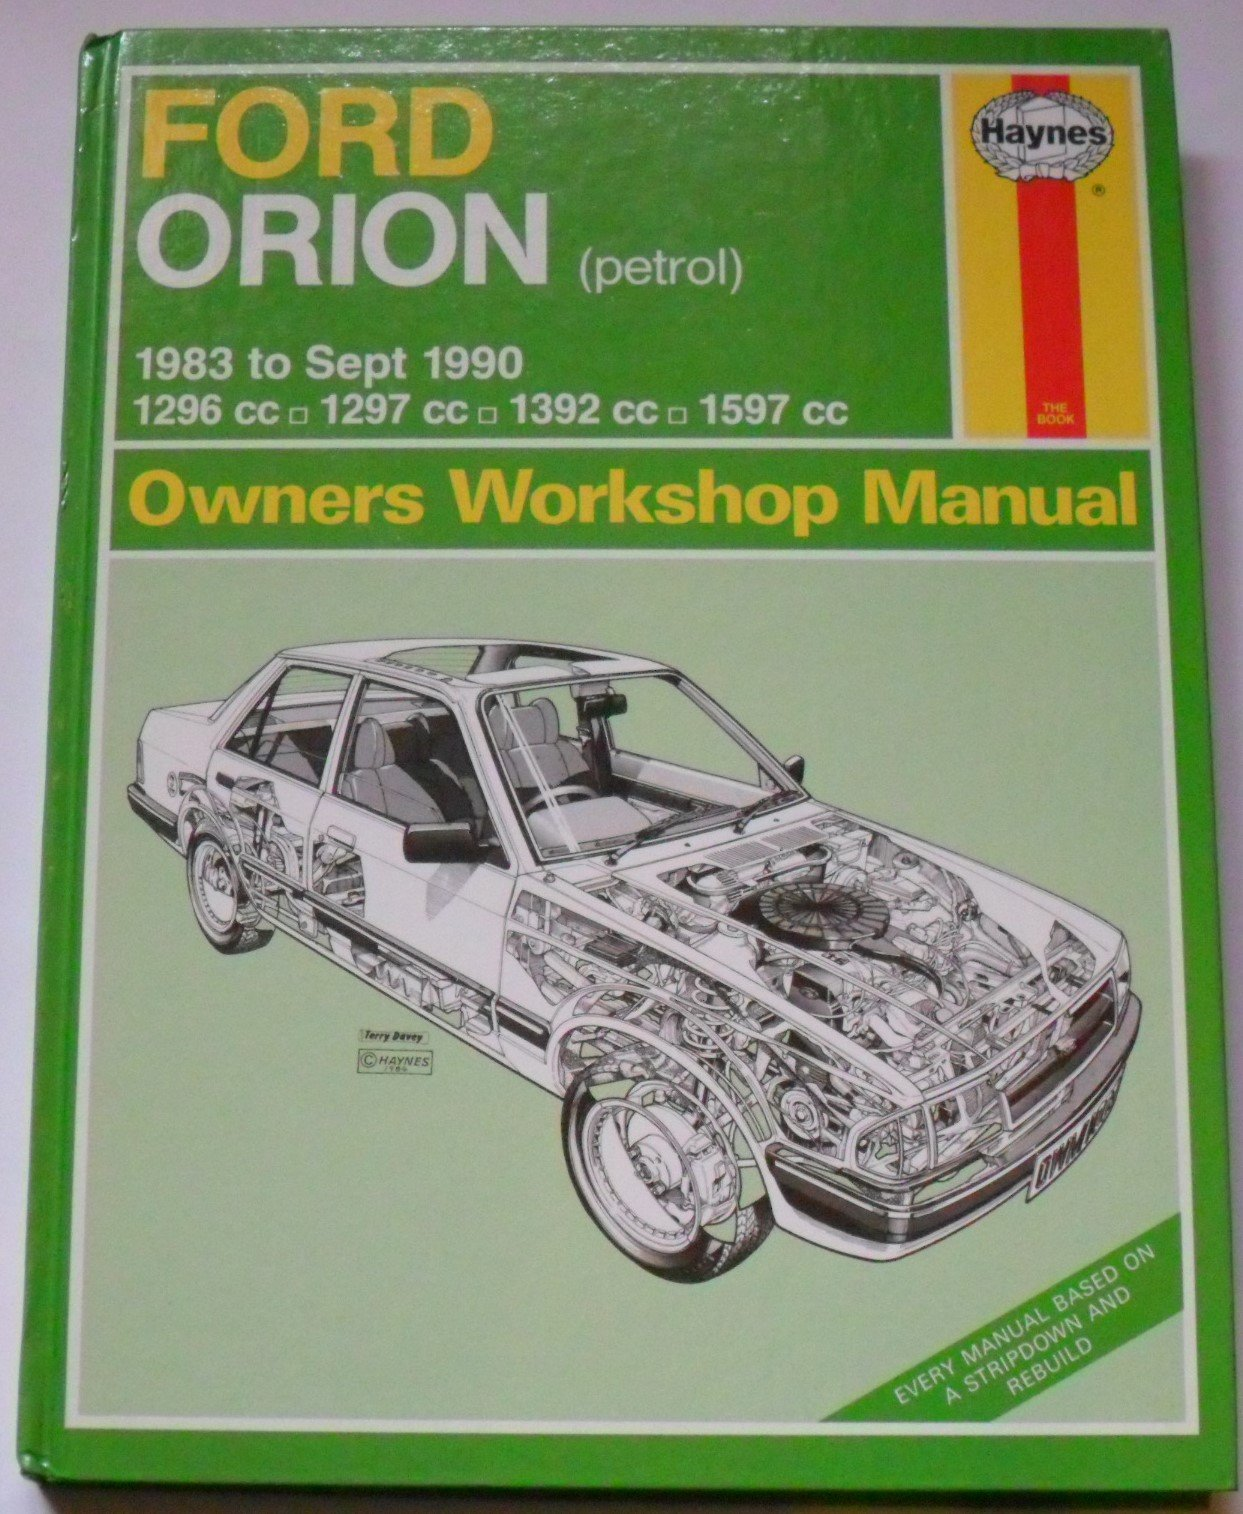 Ford Orion (Petrol) 1983-91 Owner's Workshop Manual (Service & repair  manuals) by Ian Coomber (1991-12-06): Amazon.com: Books